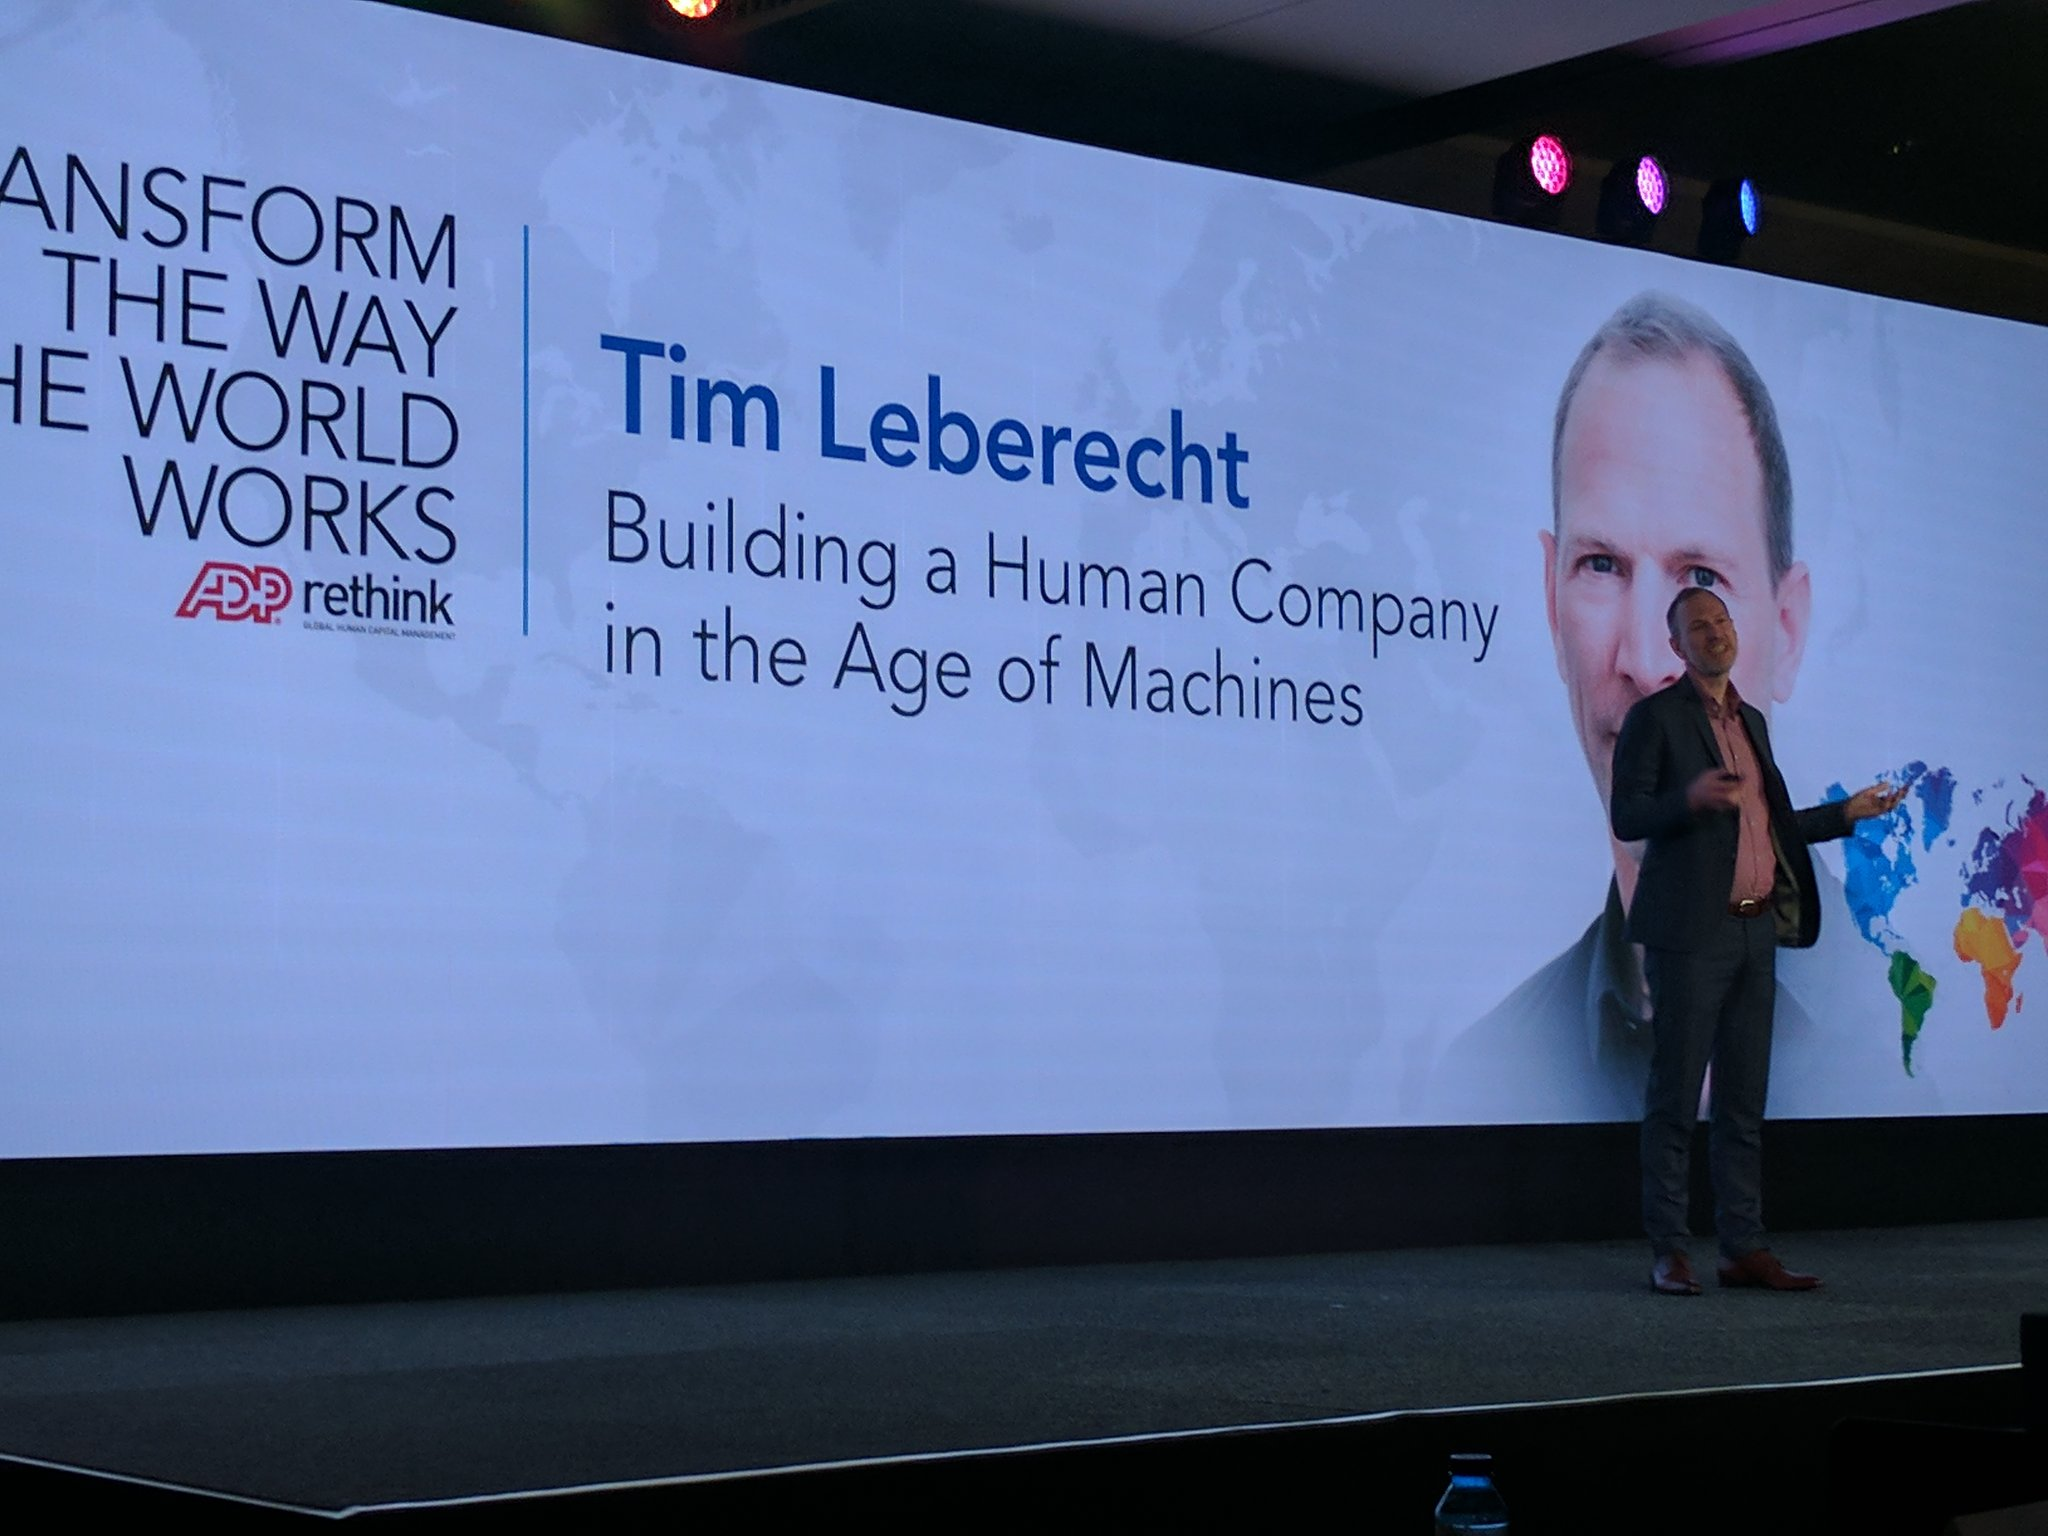 Next up -  @timleberecht on Building a Human Company in the Age of Machine #ADPReThink https://t.co/Co3KKFUiQO